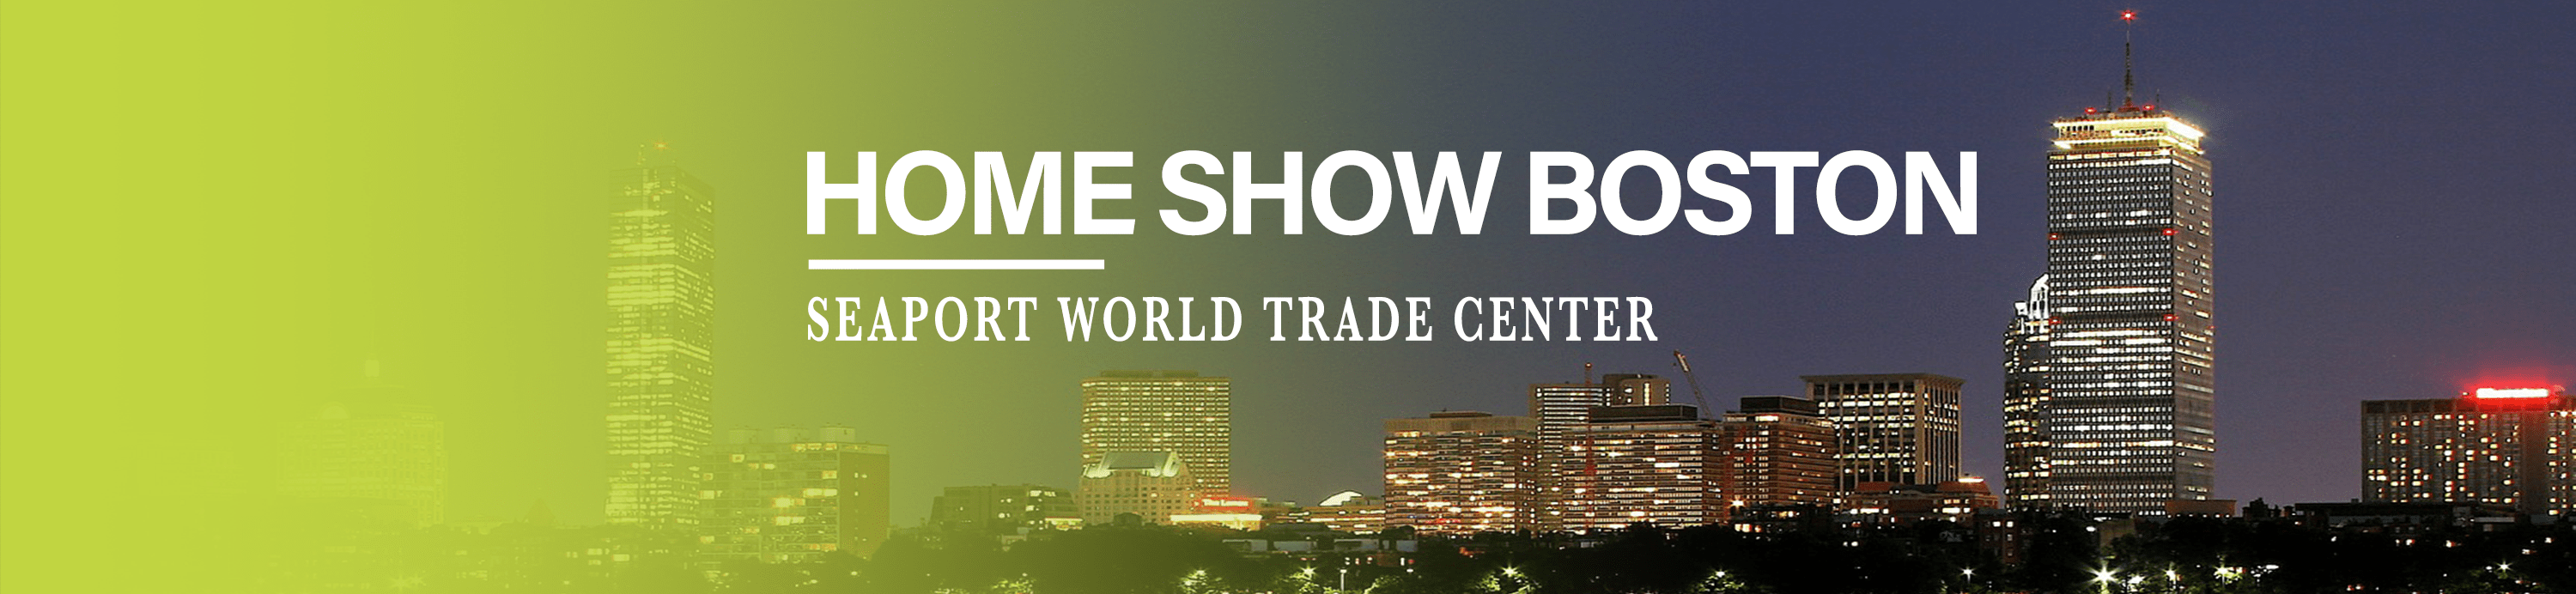 Boston Home Show 2020.2020 New England Home Show Boston Ma Fairs And